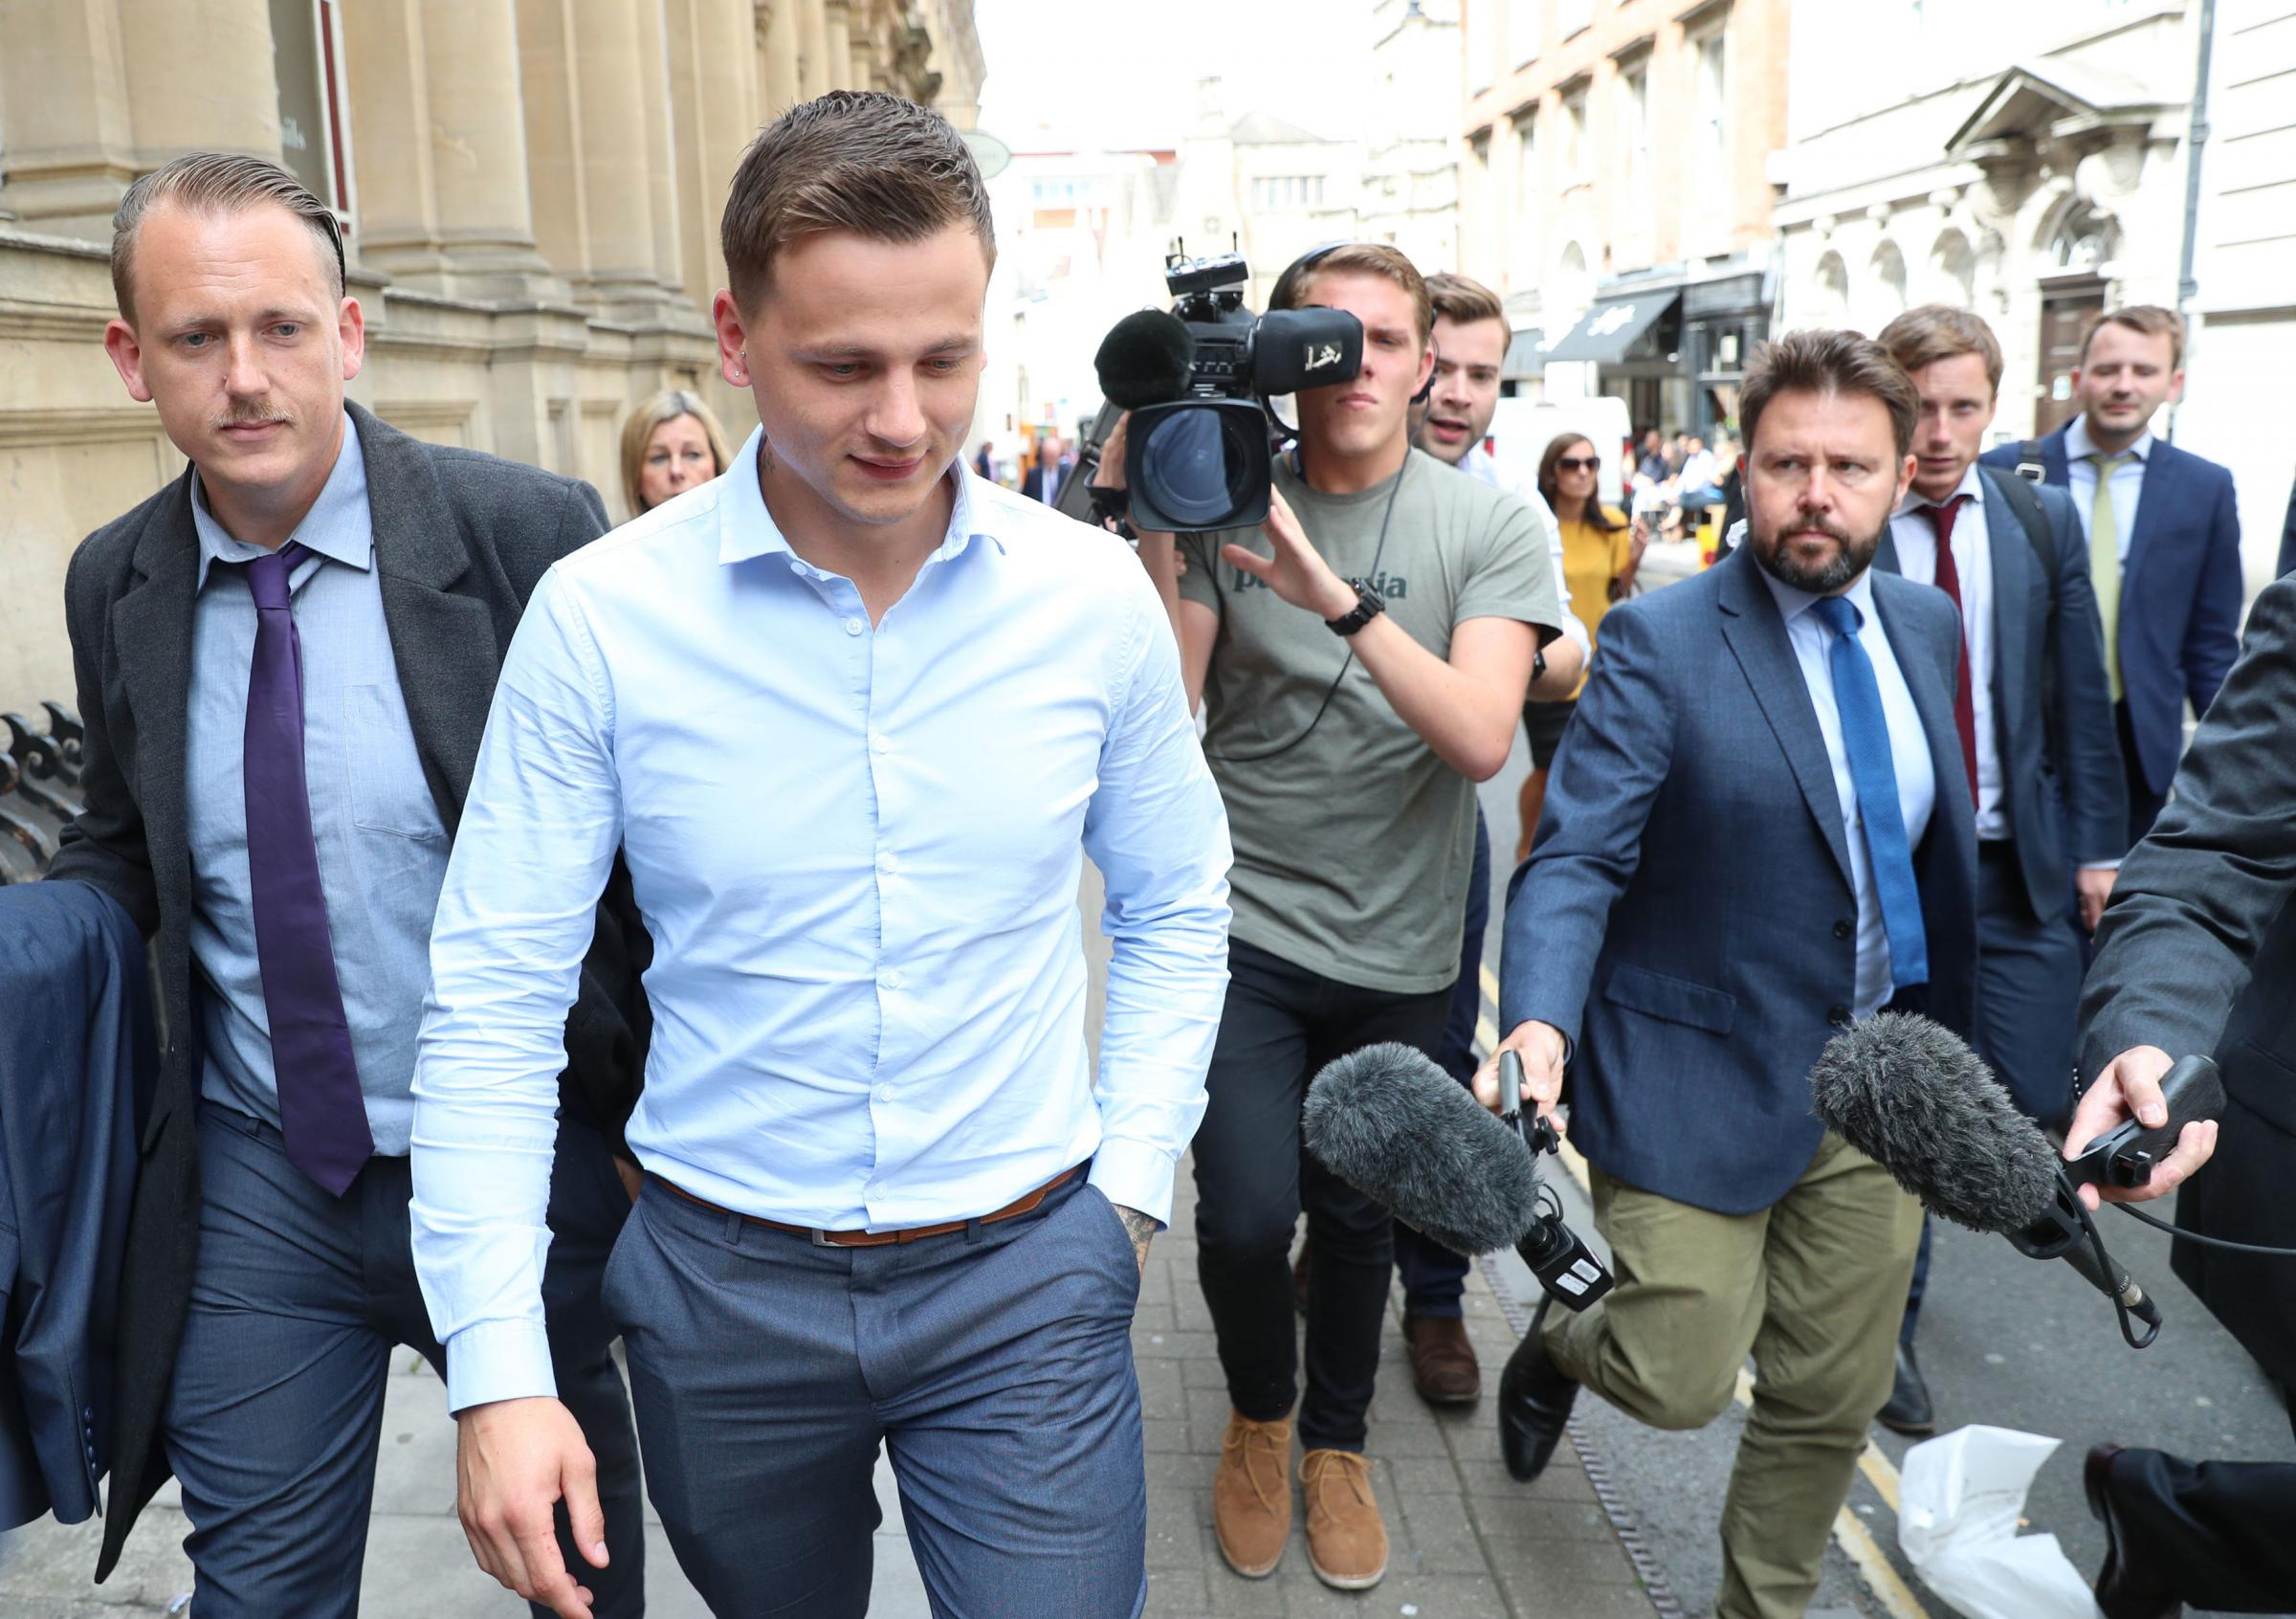 Ryan Hale leaving Bristol Crown Court where he was formally found not guilty as the trial continues against Ryan Ali and England cricketer Ben Stokes following an altercation in the Clifton Triangle area of Bristol. Picture: Andrew Matthews/PA Wire